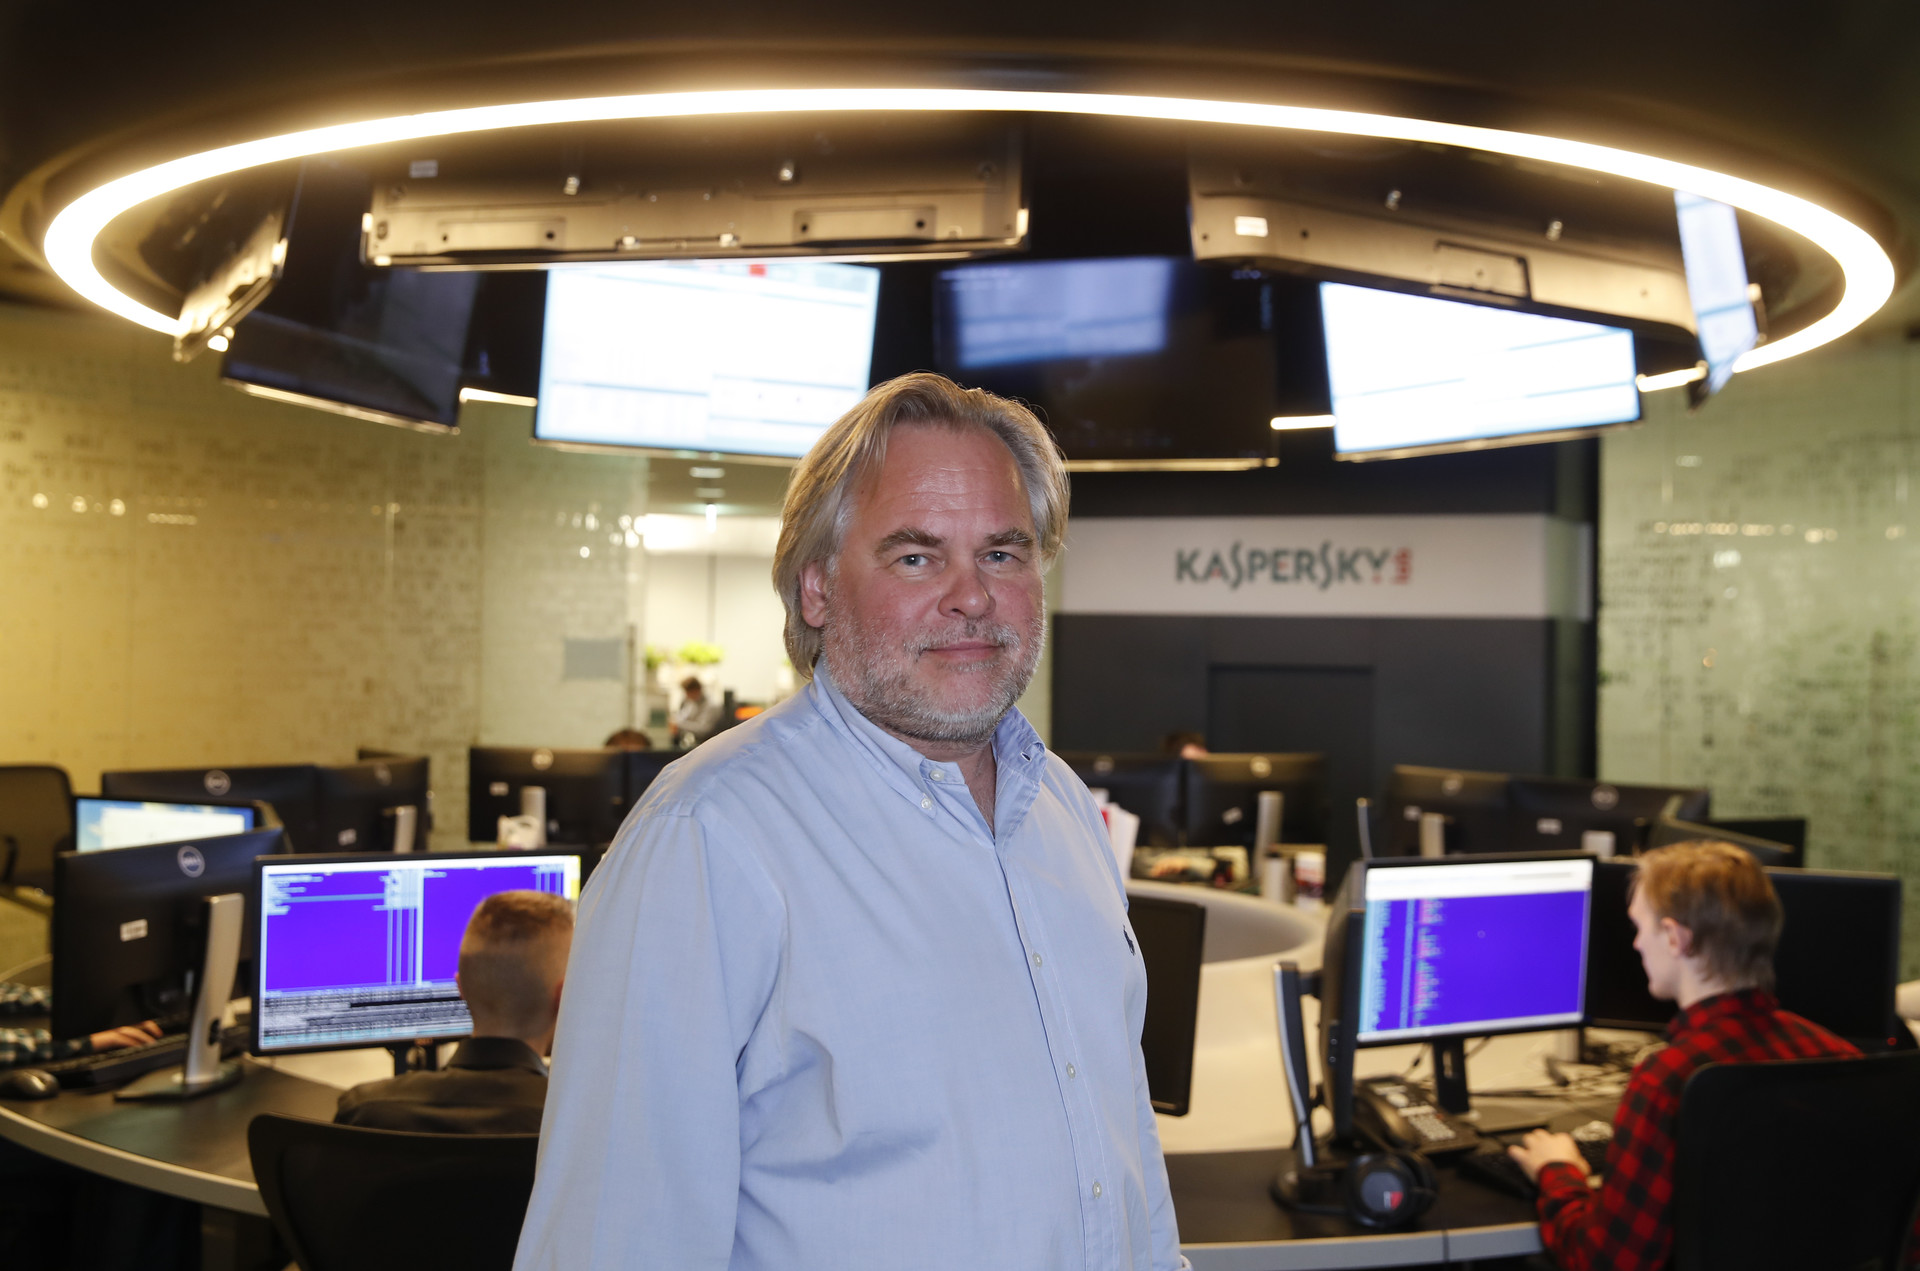 Eugene Kaspersky, CEO of the Russian company, compared the US actions to witch-hunt